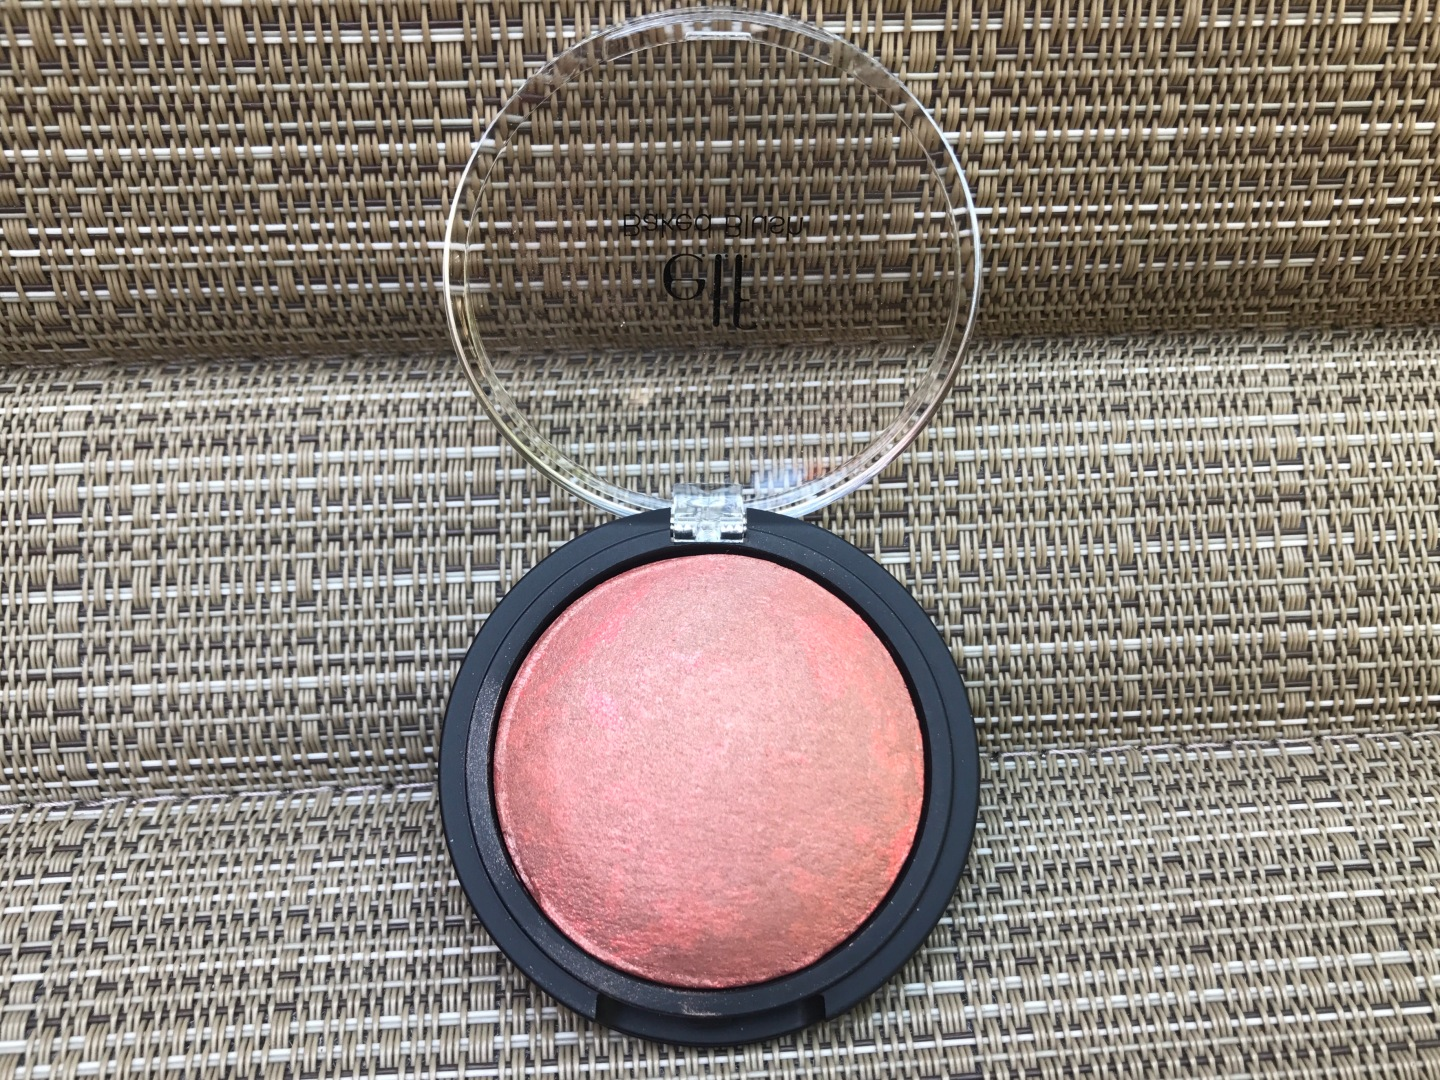 ELF Baked Blush Blush: Rich Rose